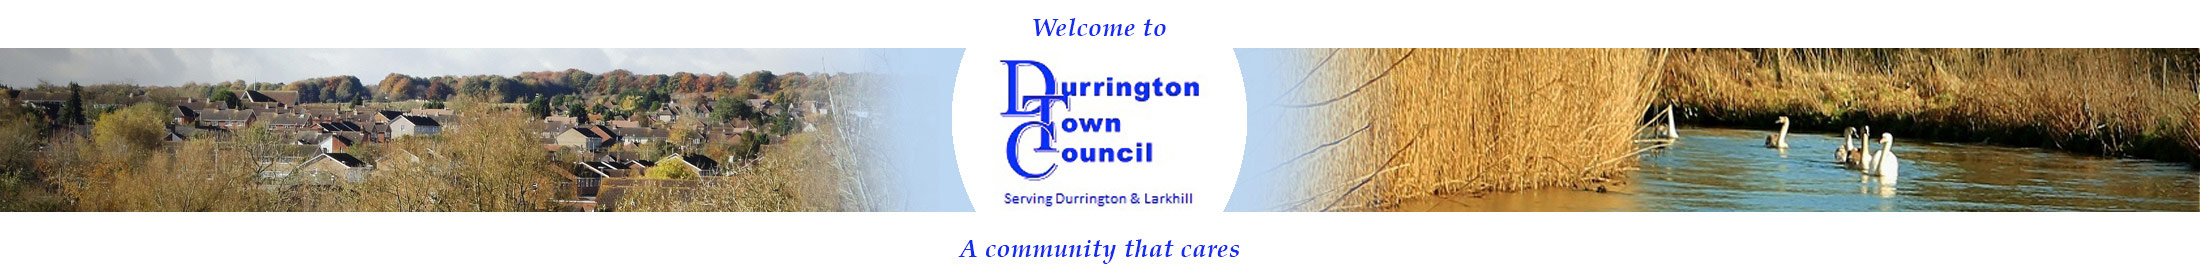 Header Image for Durrington Town Council